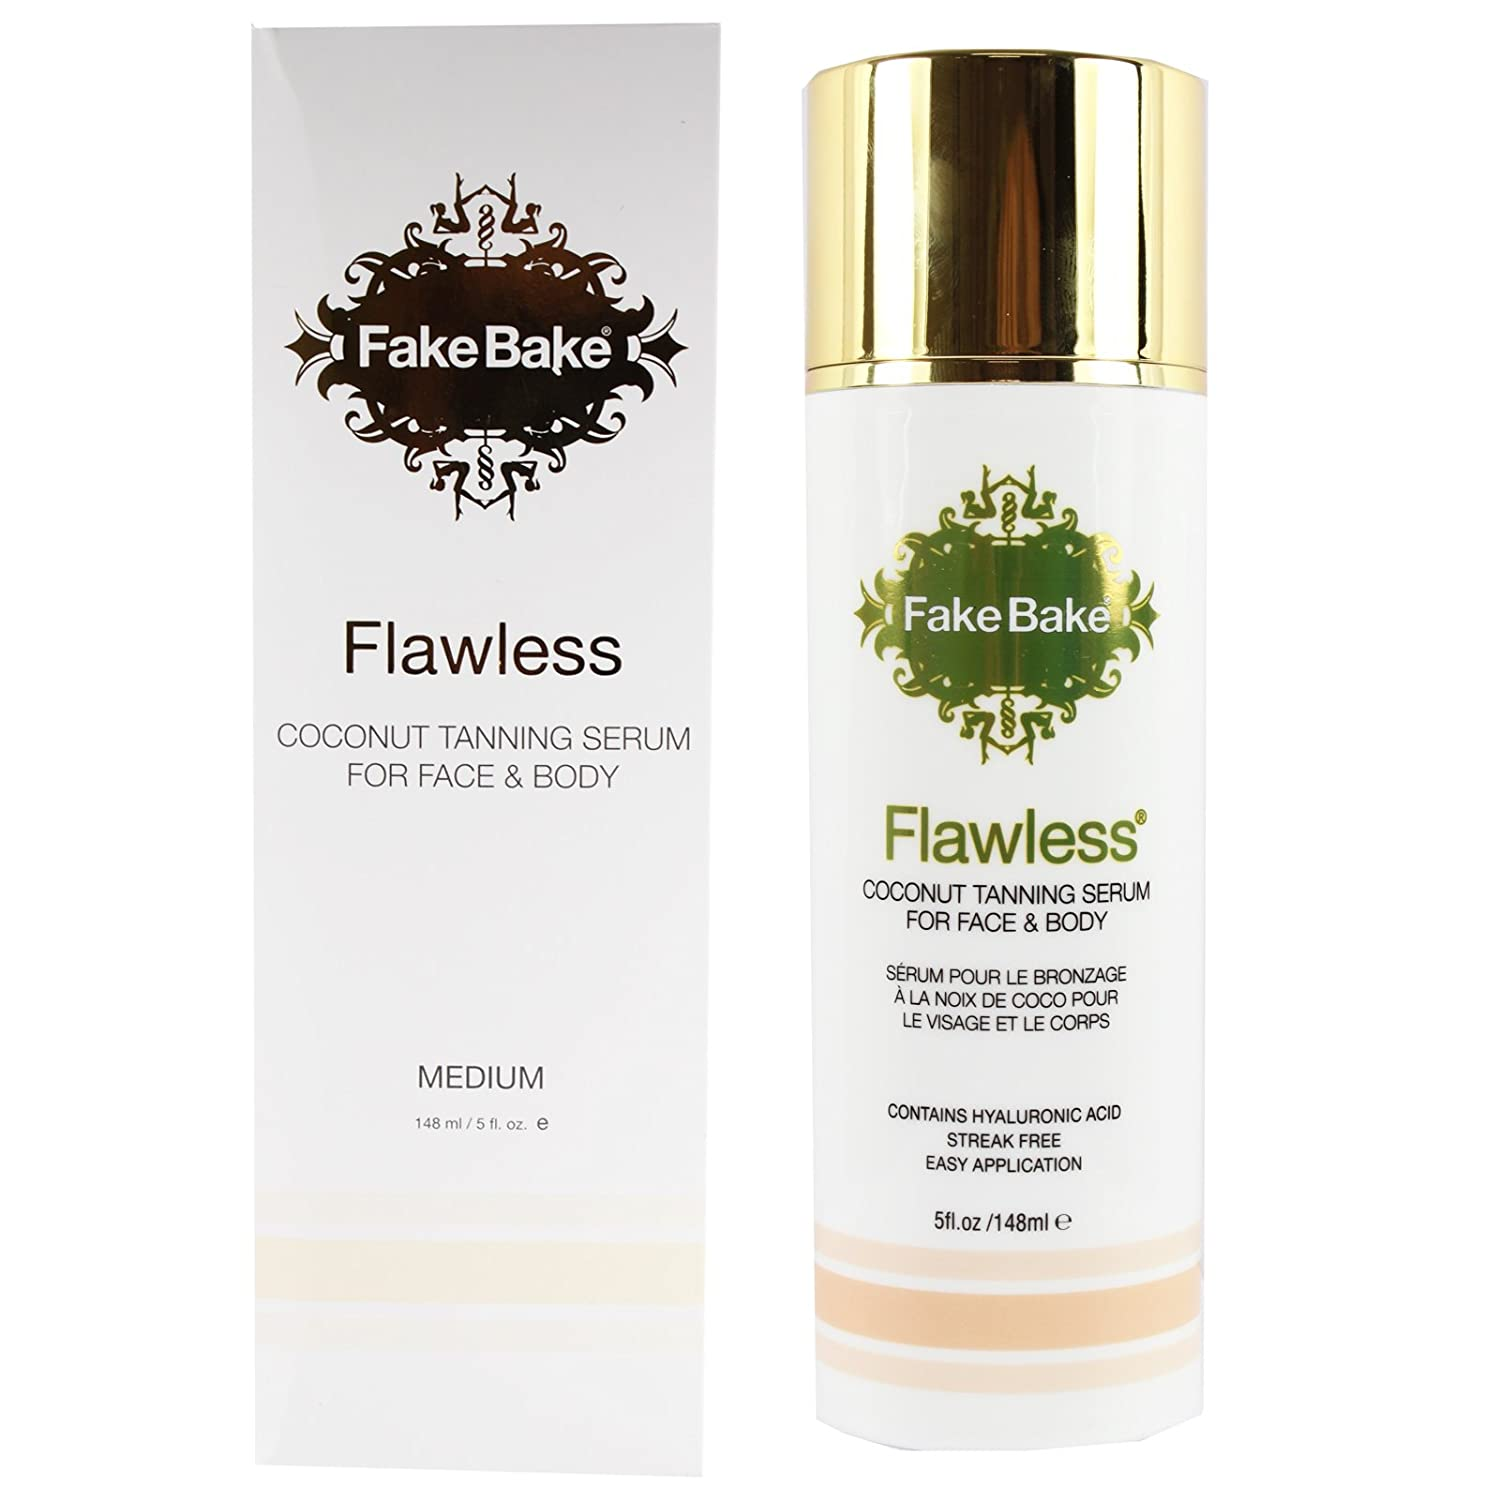 Fake Bake Flawless Coconut Tanning Serum for Face & Body, 148 ml / 5 oz-Pack of 6 Sense of Care Animal Cutie Mask Pack Anti-Aging Horse Oil (10 Sheets) 0.85fl.oz/25.1ml